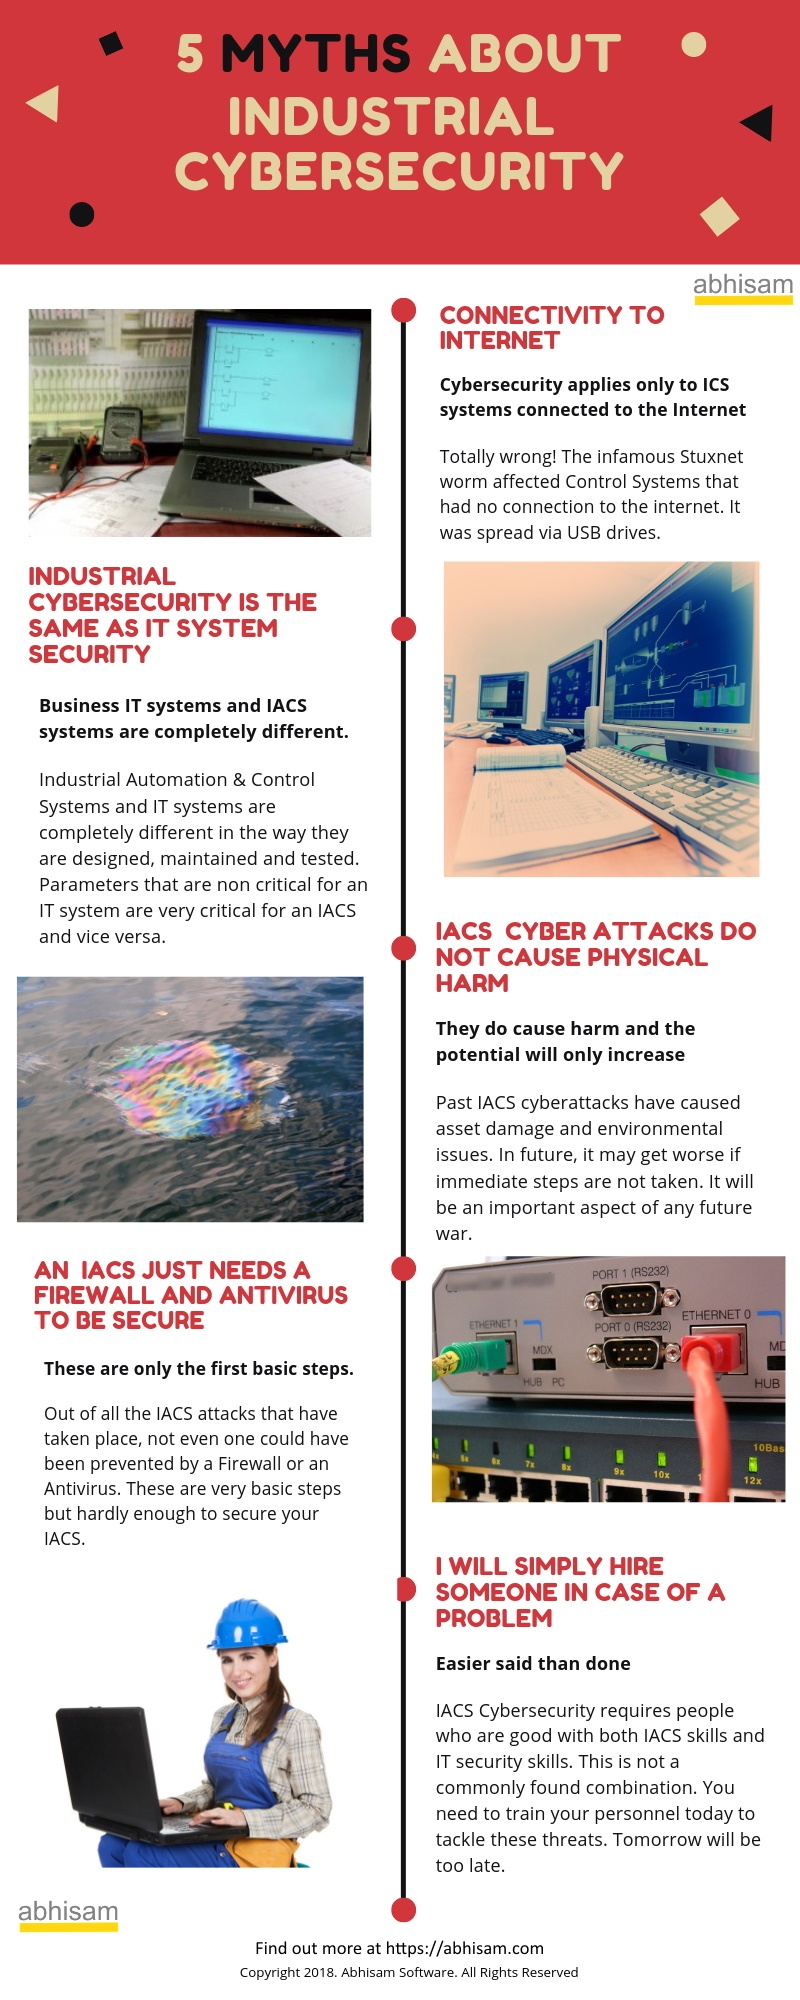 Cybersecurity Myths-Infographic by Abhisam